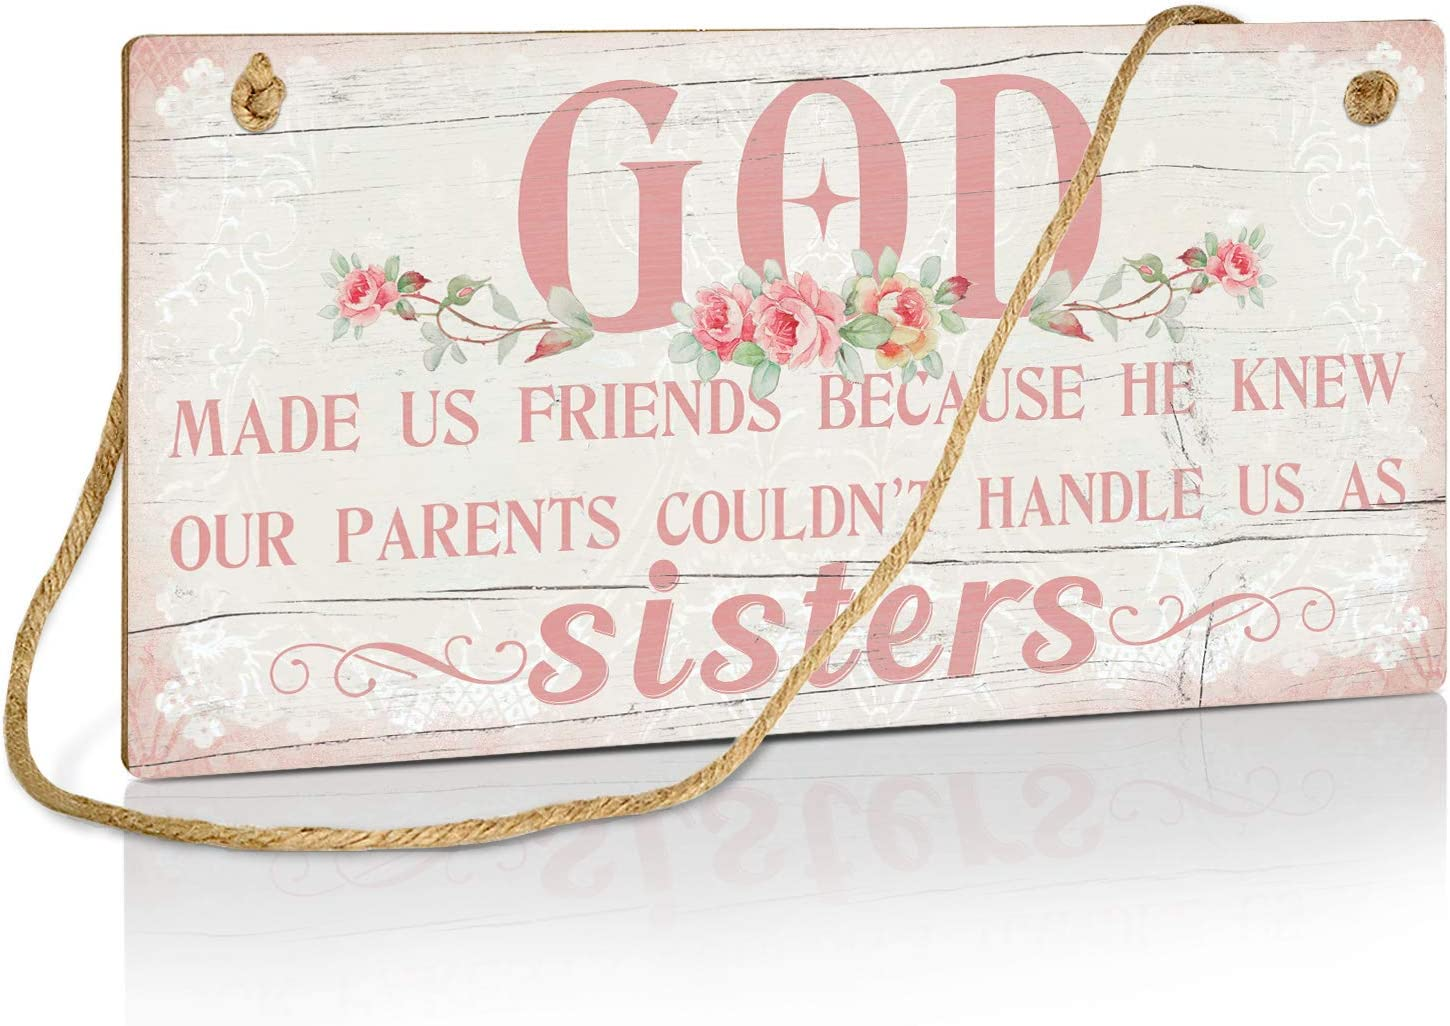 Putuo Decor Friendship Decor, Rustic Wall Sign for Home, Bedroom, Bitrthday Gift for Women, Friends, 10x5 Inches - God Made Us Friends Because He Knew Our Parents Couldn't Handle Us As Sisters